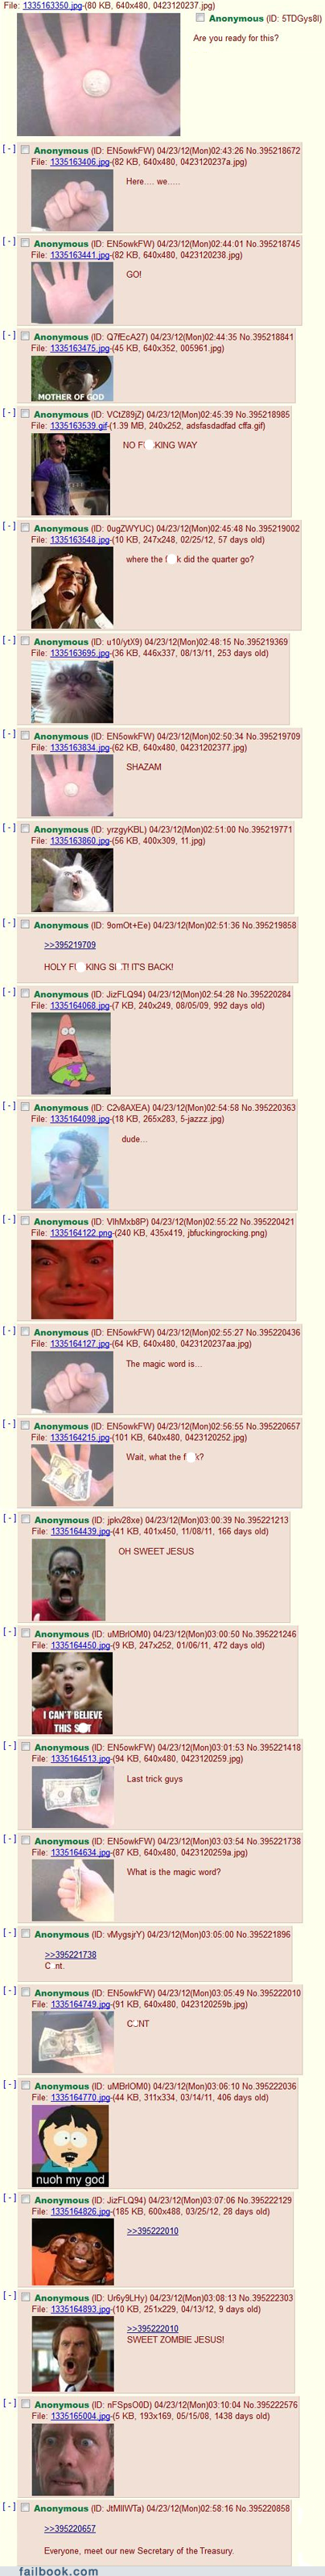 4chan magic magic trick - 6453352704